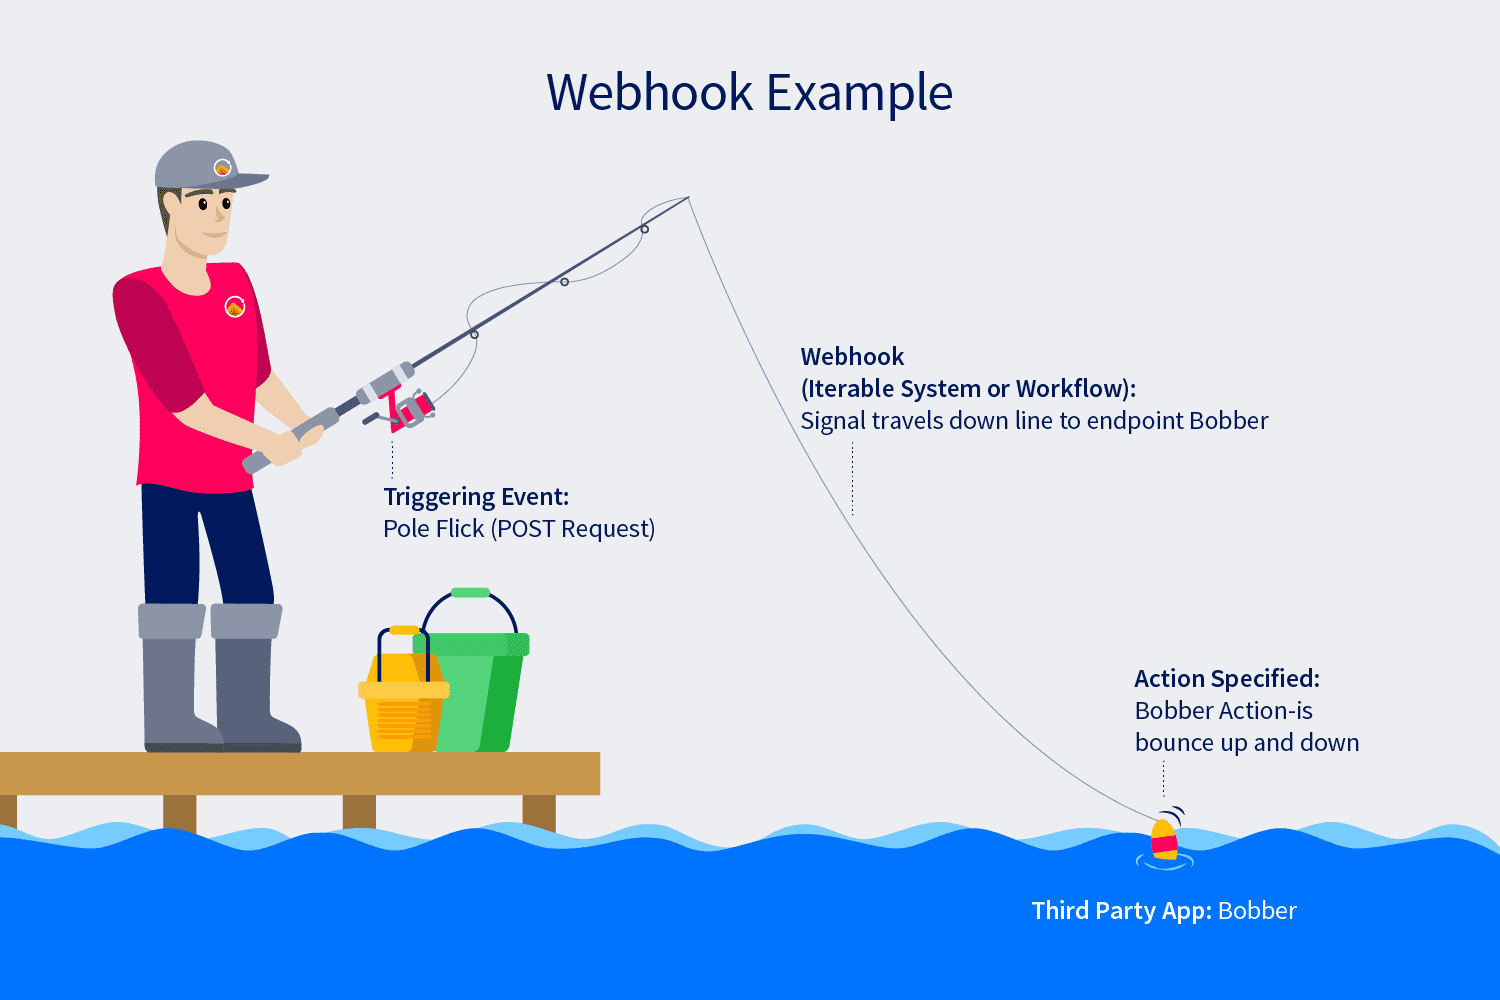 Webhooks transmit information between platforms